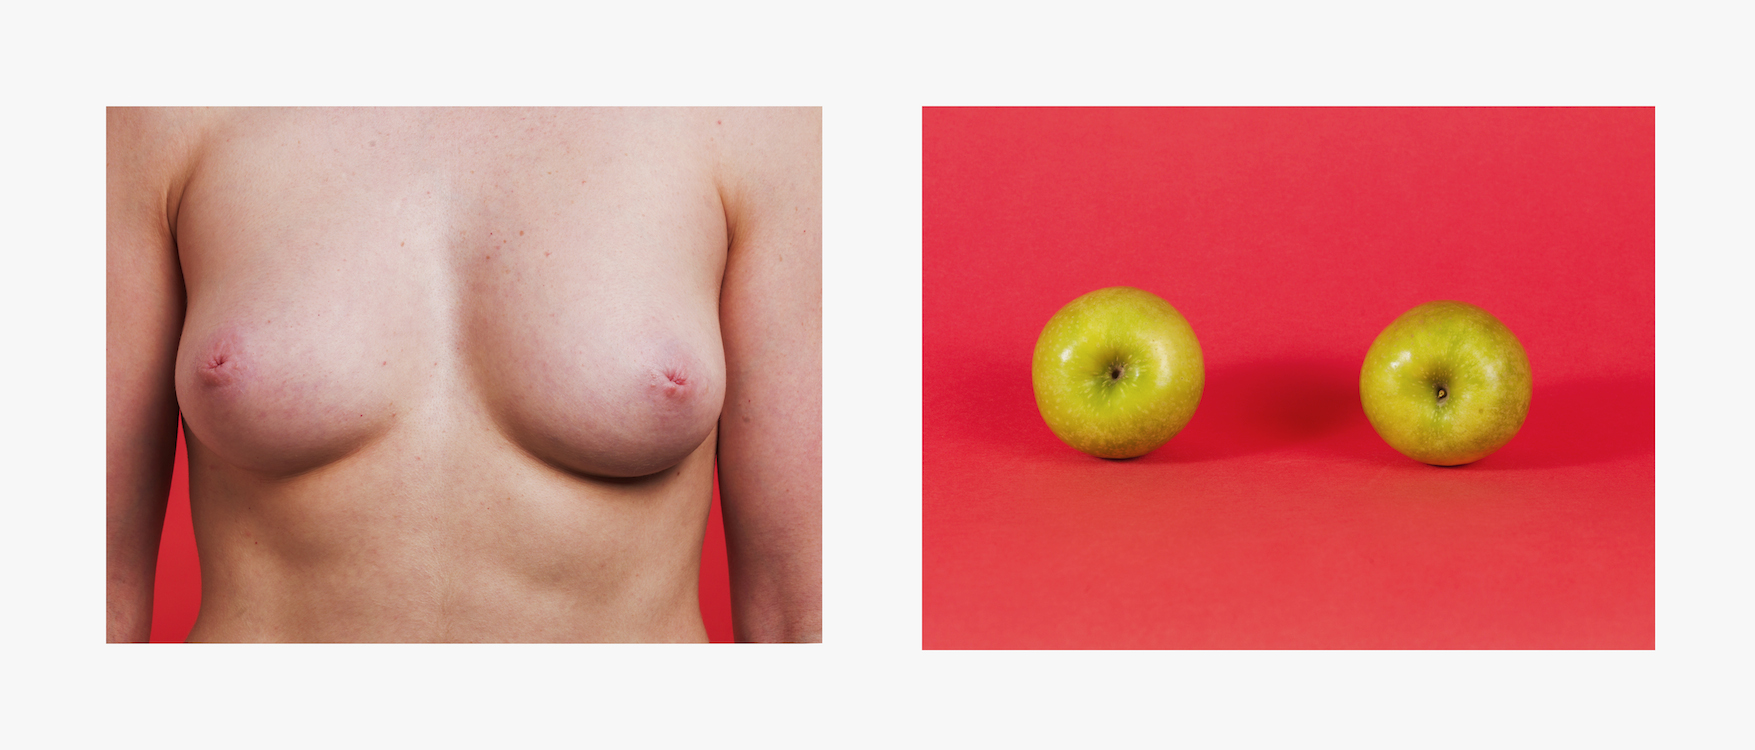 05-boobs-personal-work-charlotte-abramow-photography-paris-brussels